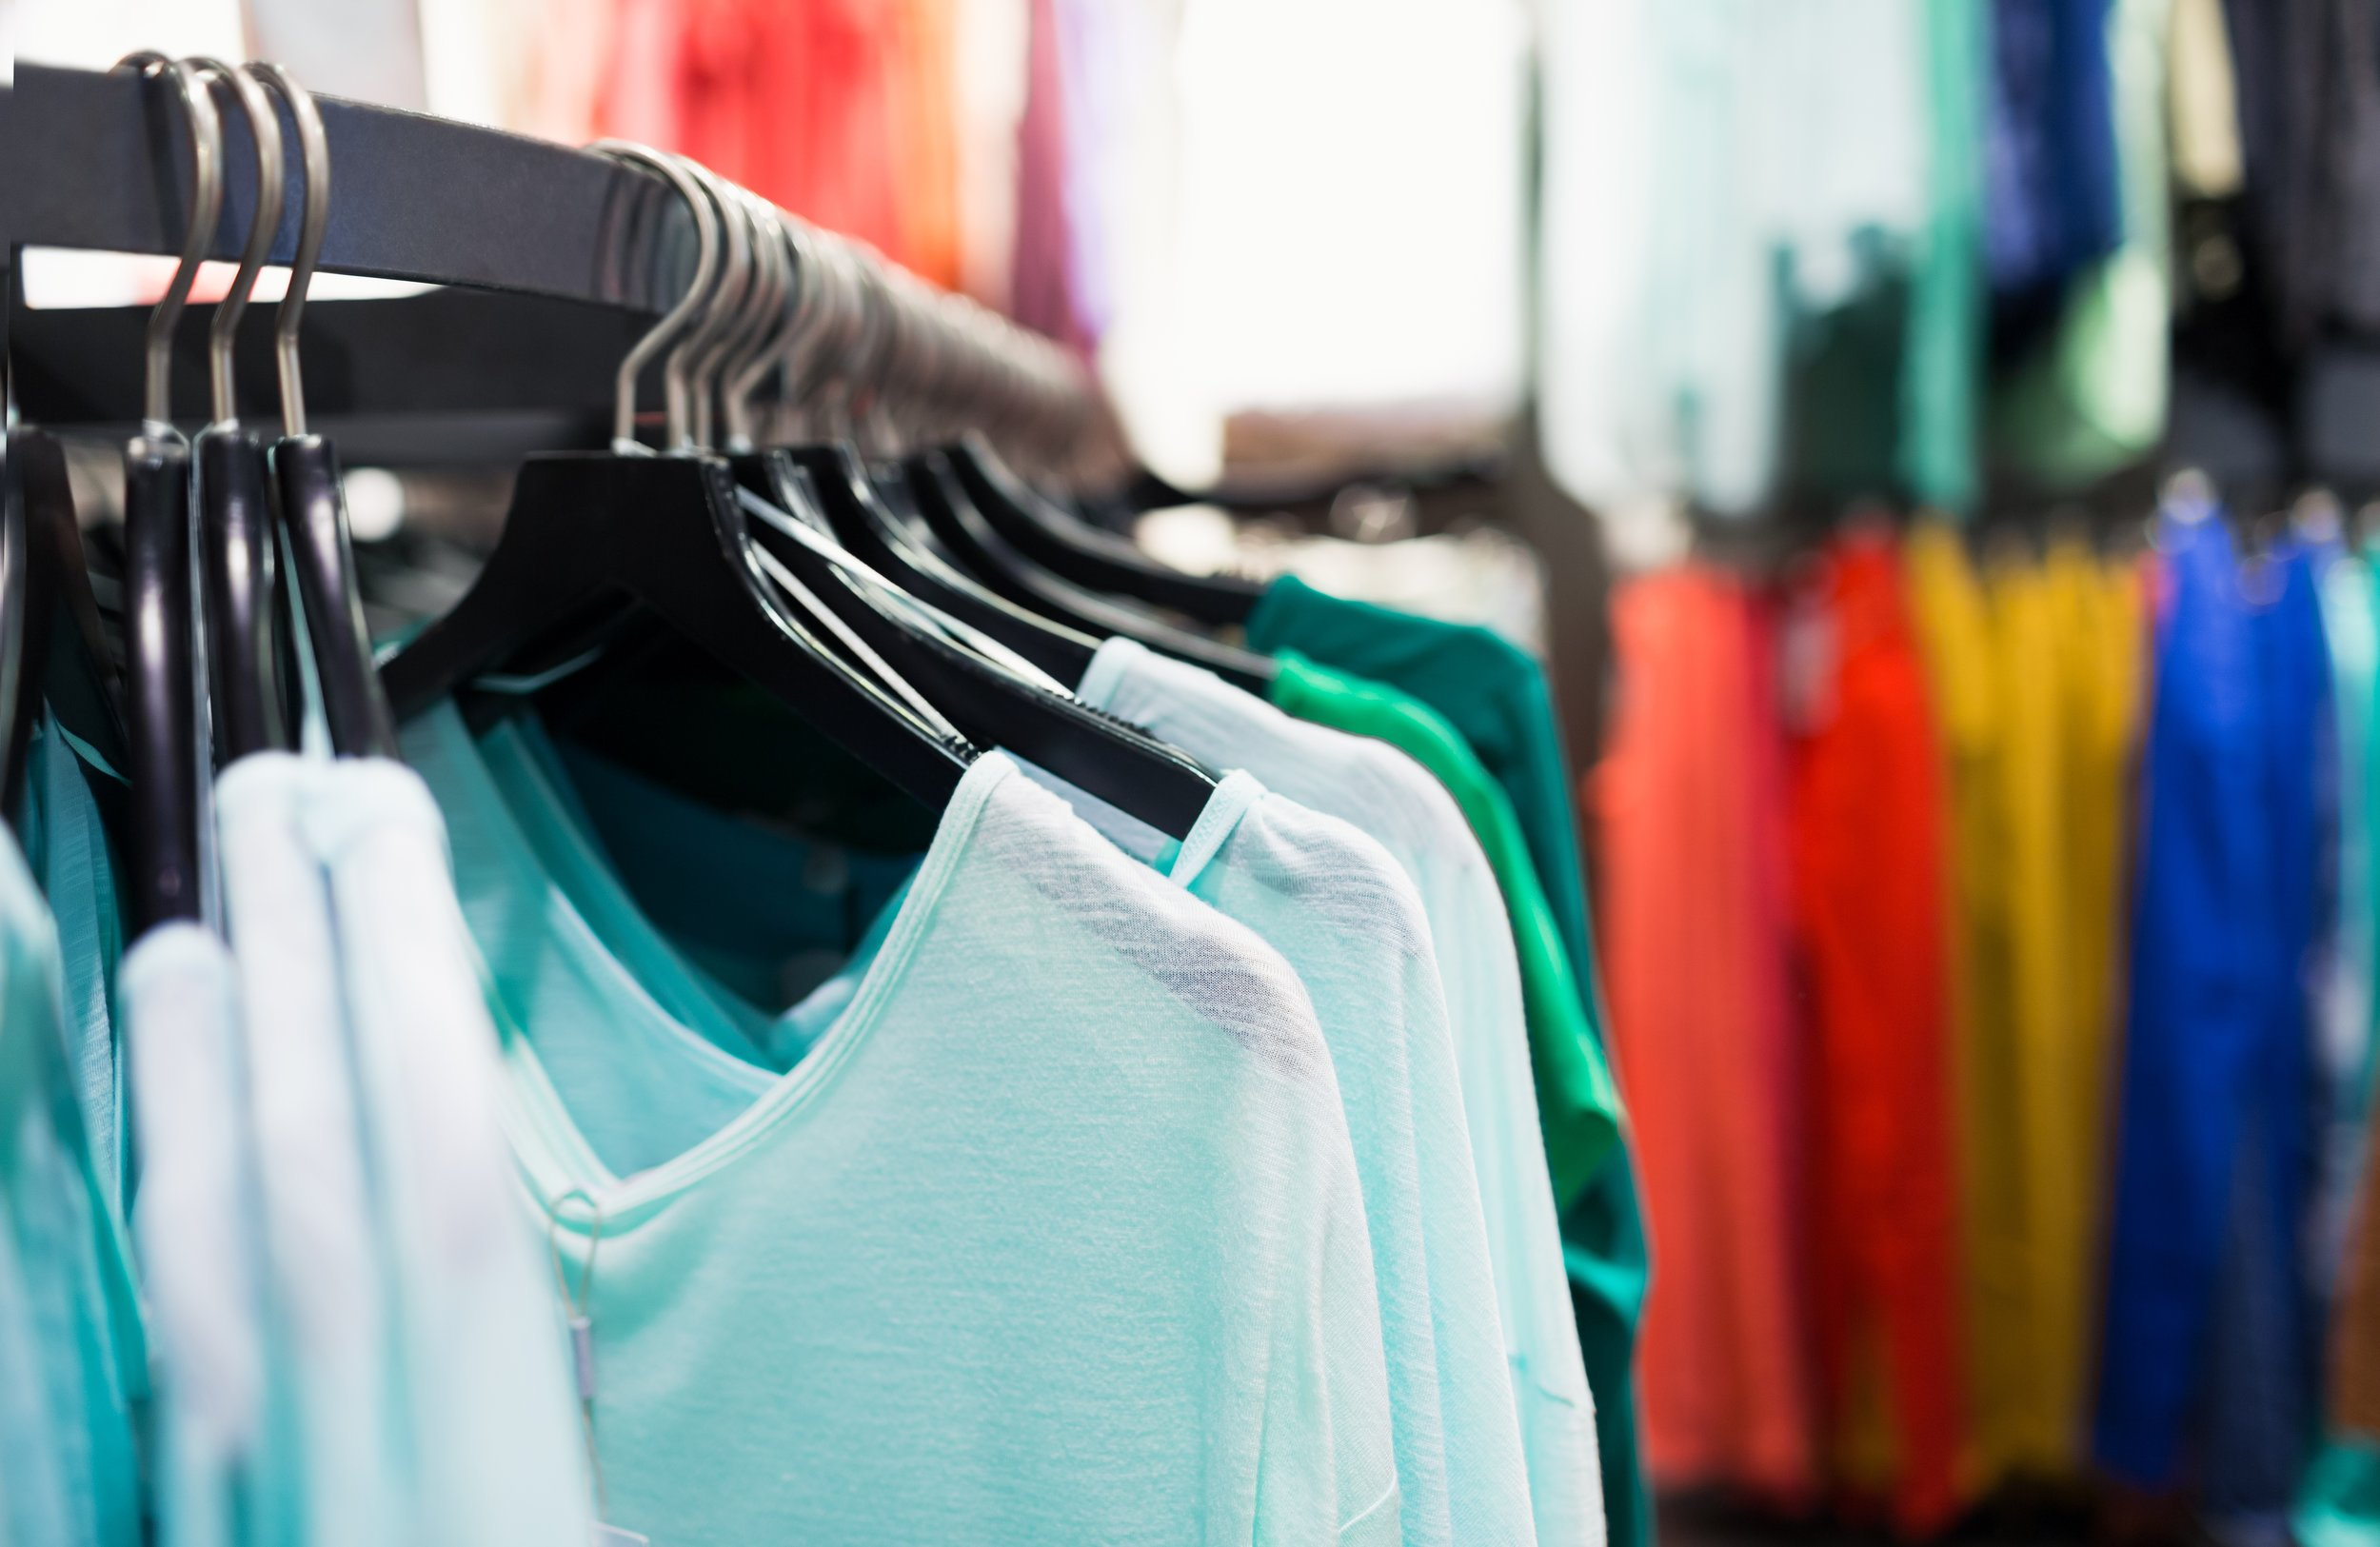 thumbnail The Apparel Industry: What's Necessary and What's Possible